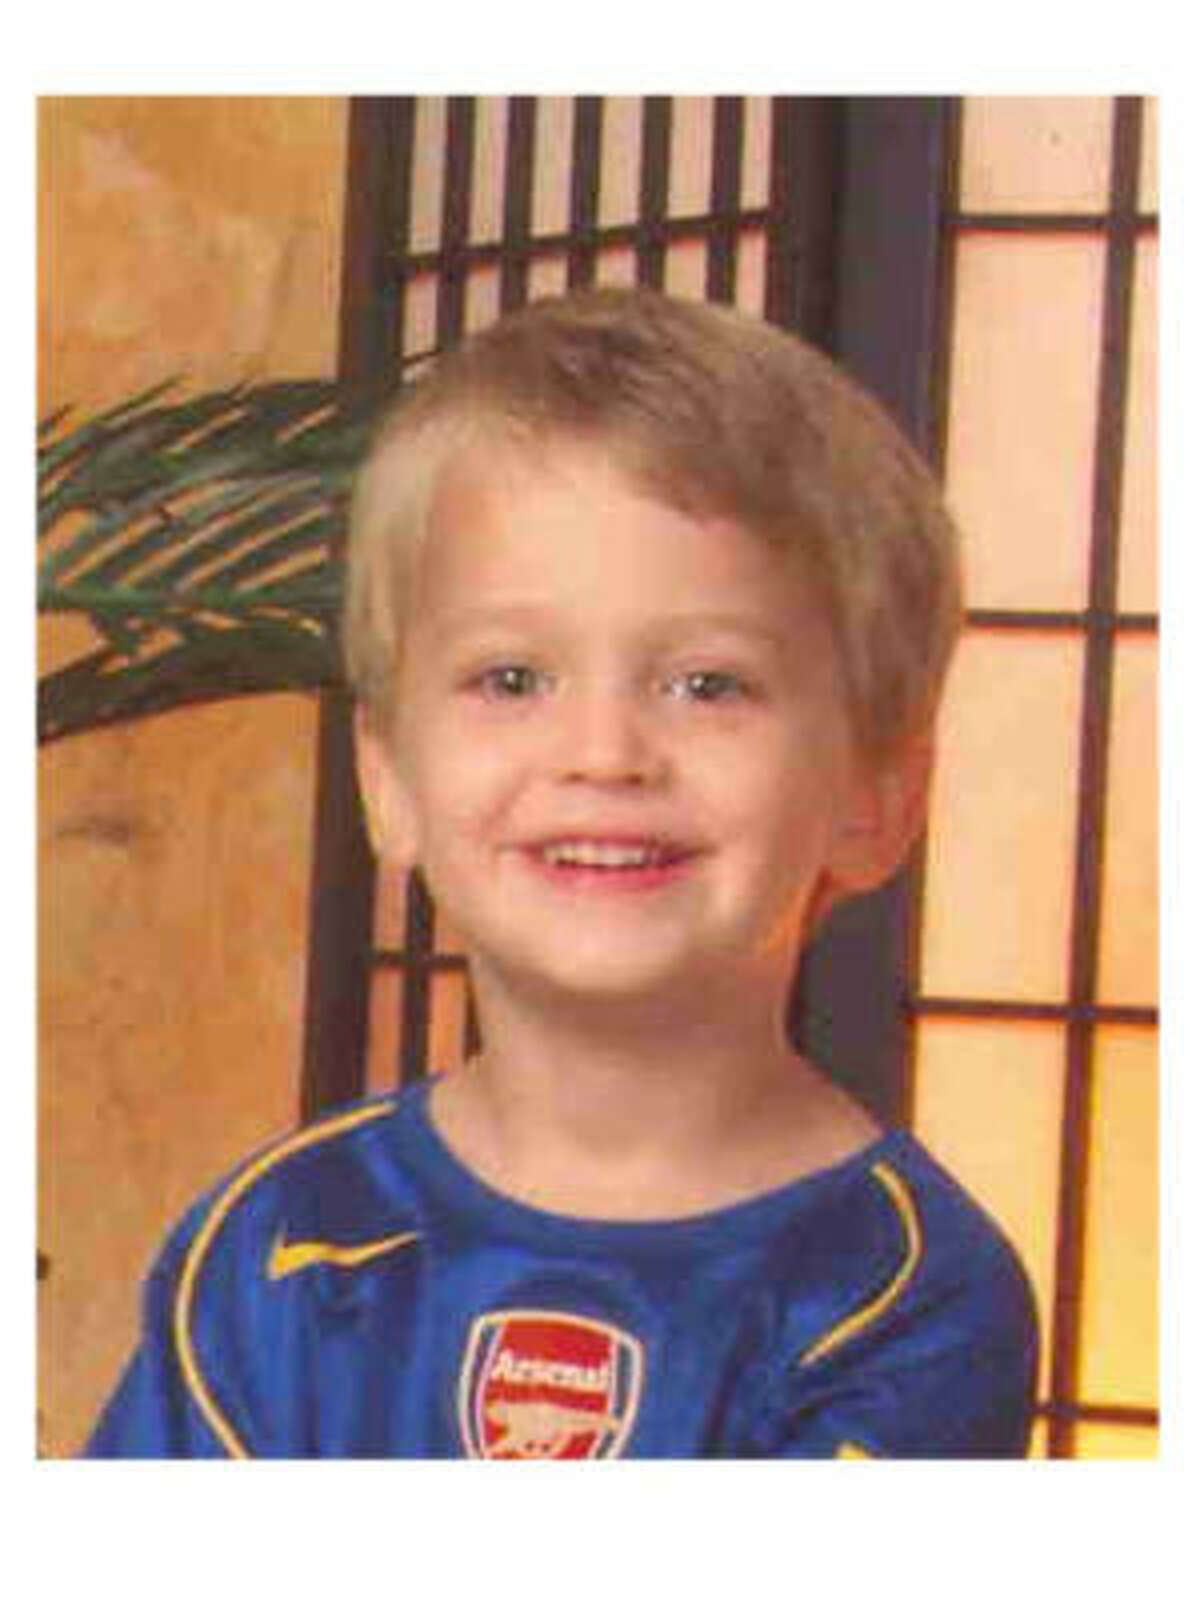 John Albert Pluchinsky, 4, the son of Kathleen Wollin Pluchinsky and David Allen Pluchinsky and younger brother of Thomas Alec Pluchinsky, died while attending a summer day camp near his home in Memorial on July 18, 2007.